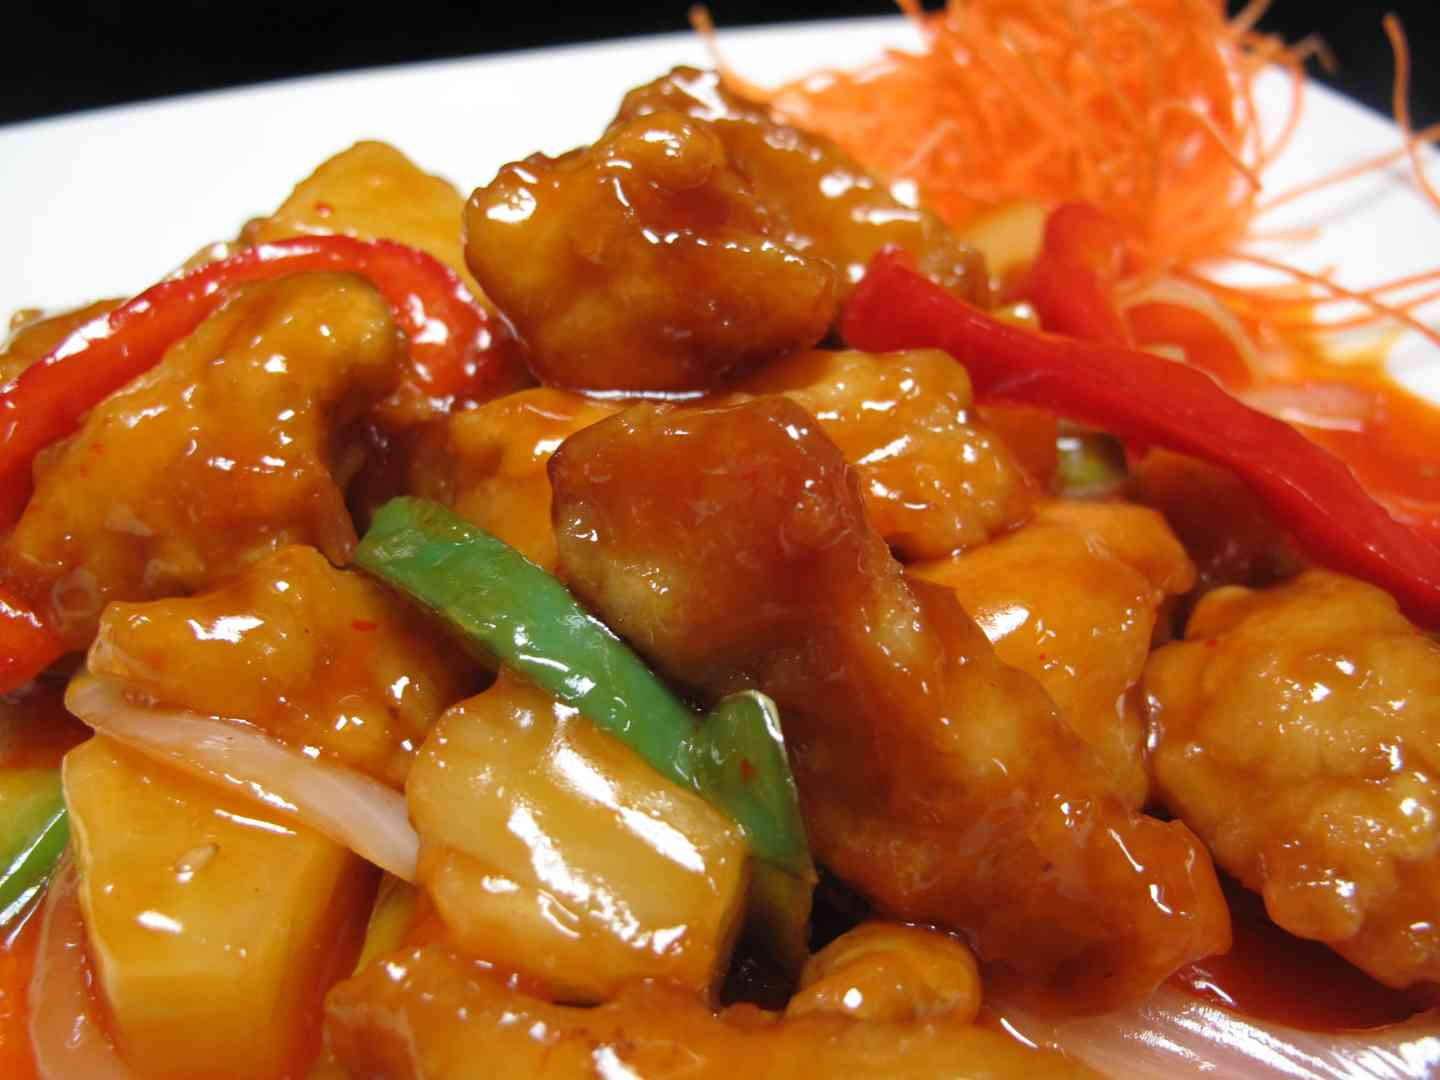 Lunch-Sweet & Sour Chicken